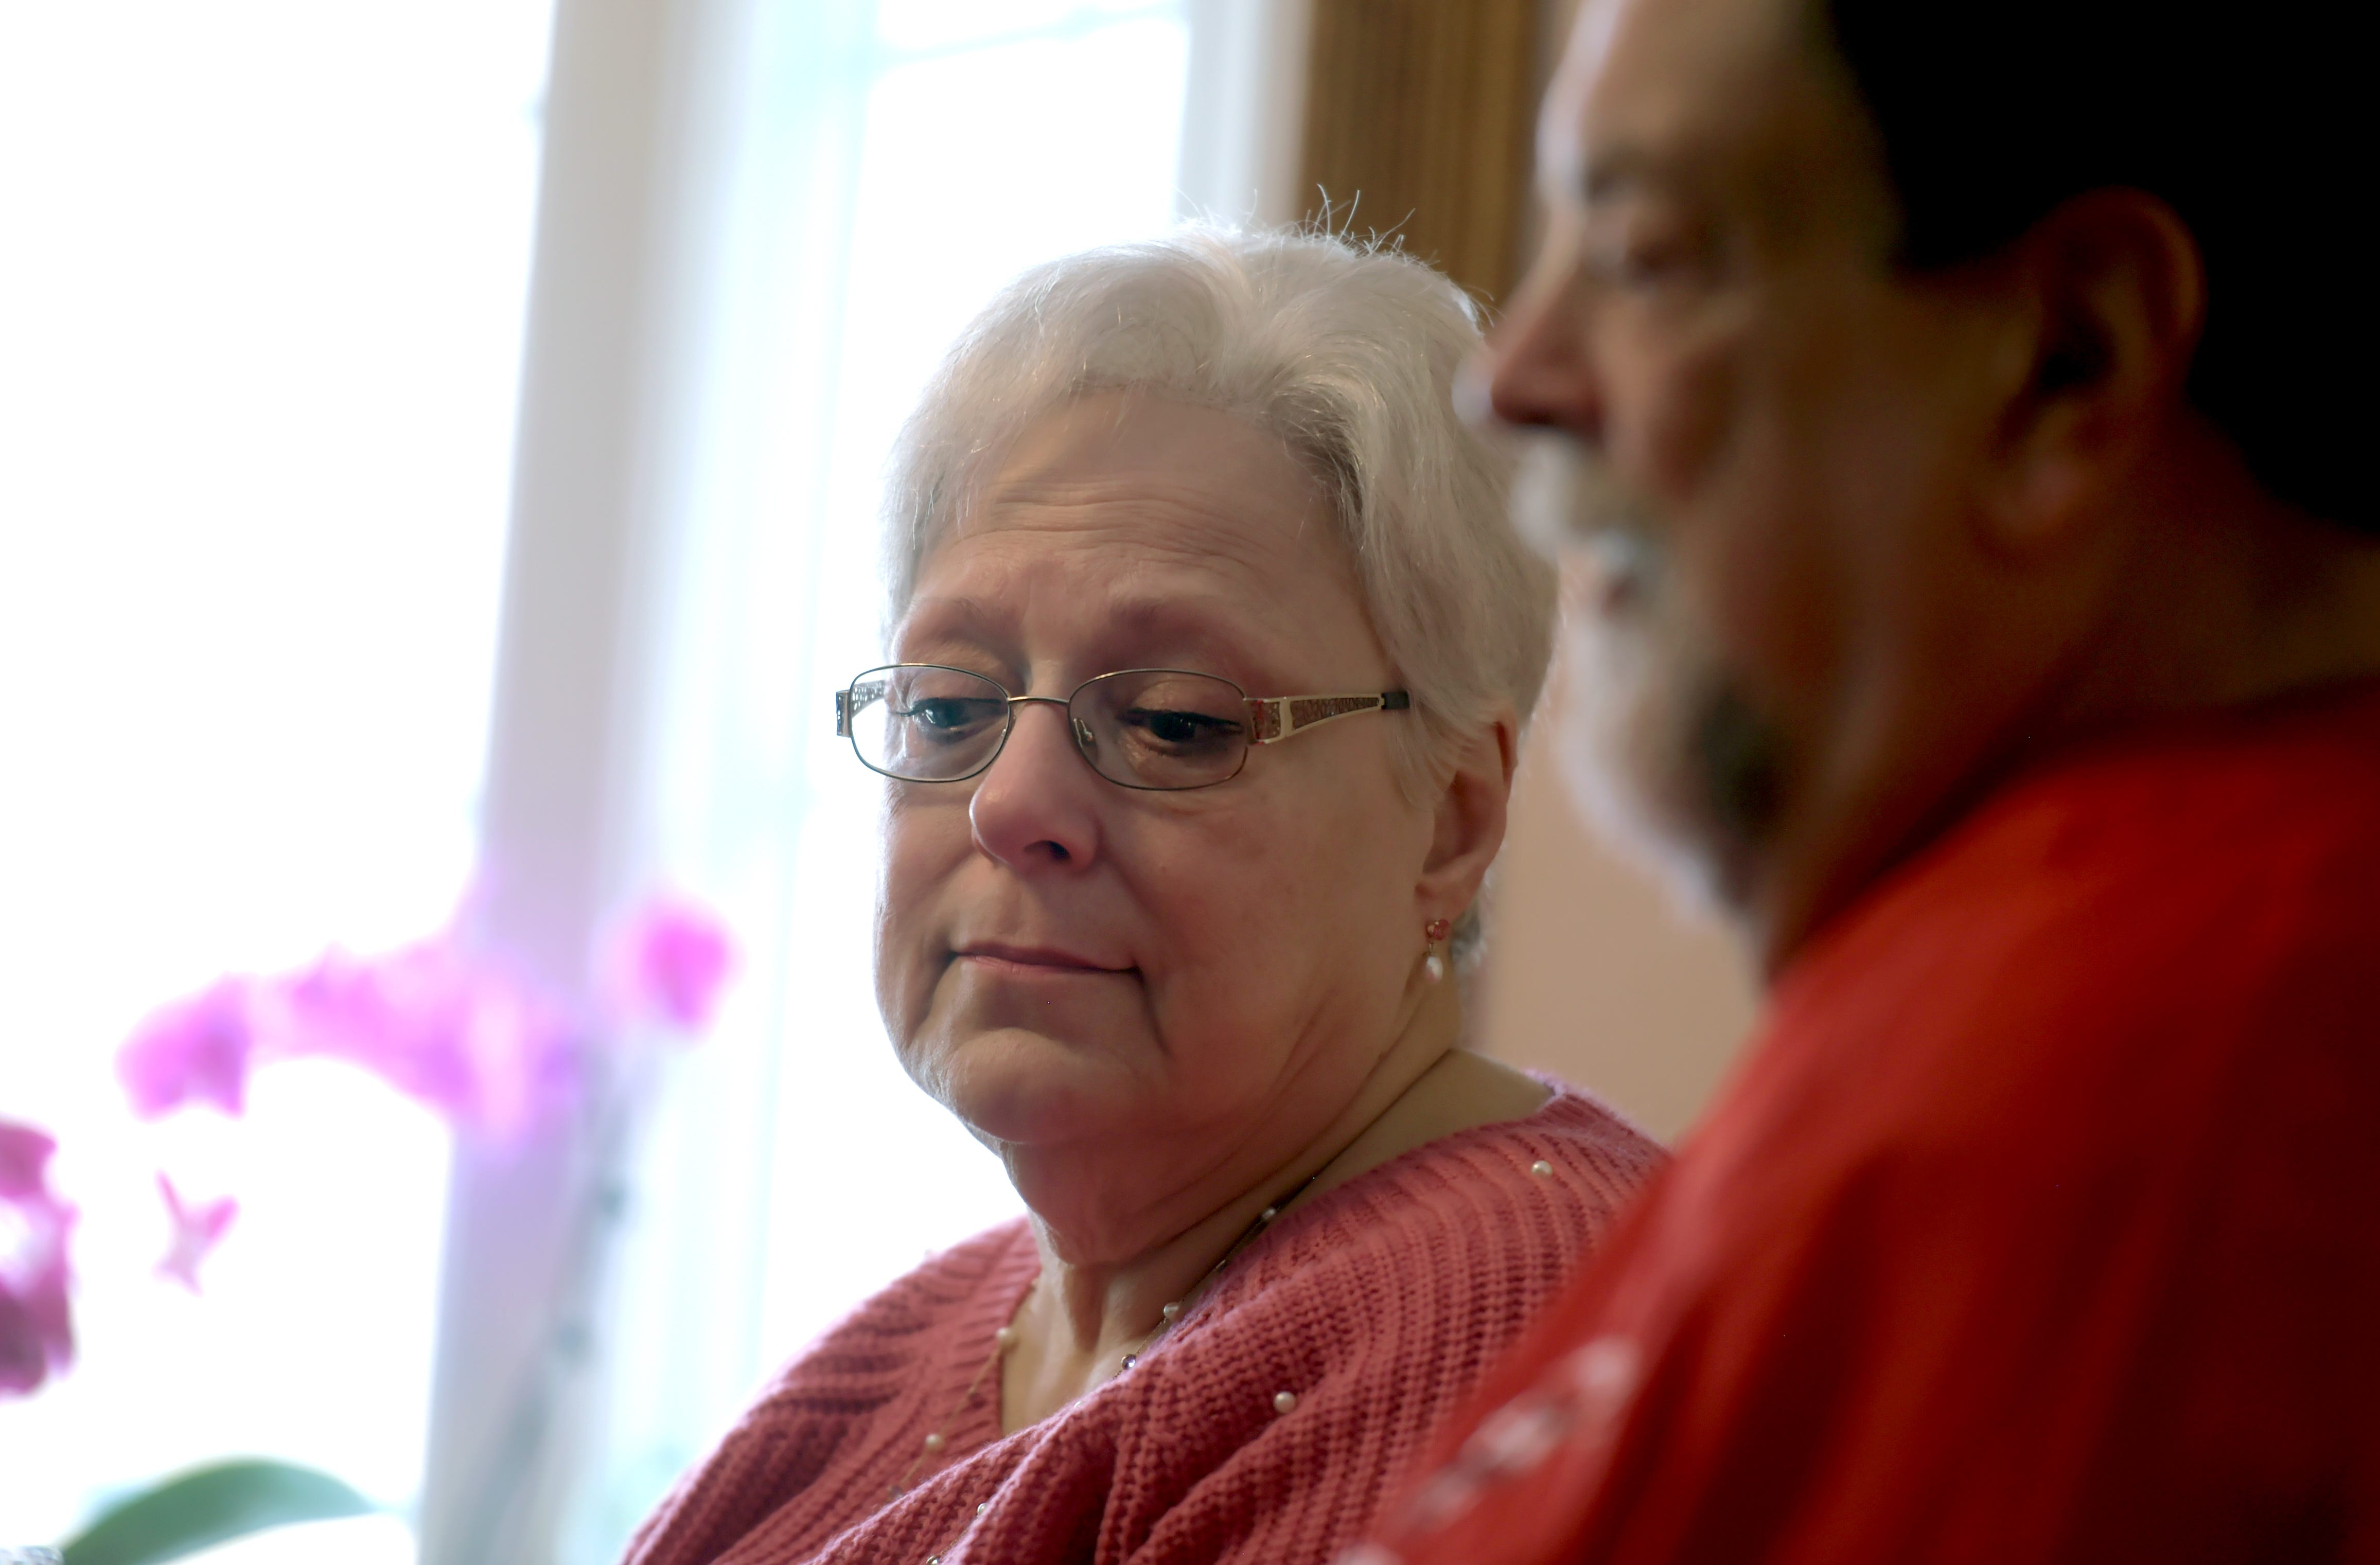 Diane and Mike Husar of Binghamton talk about their late son Tom Husar, who died in November 2019. Tom suffered from a chronic disease and was in the Broome County jail on a probation violation when he died.